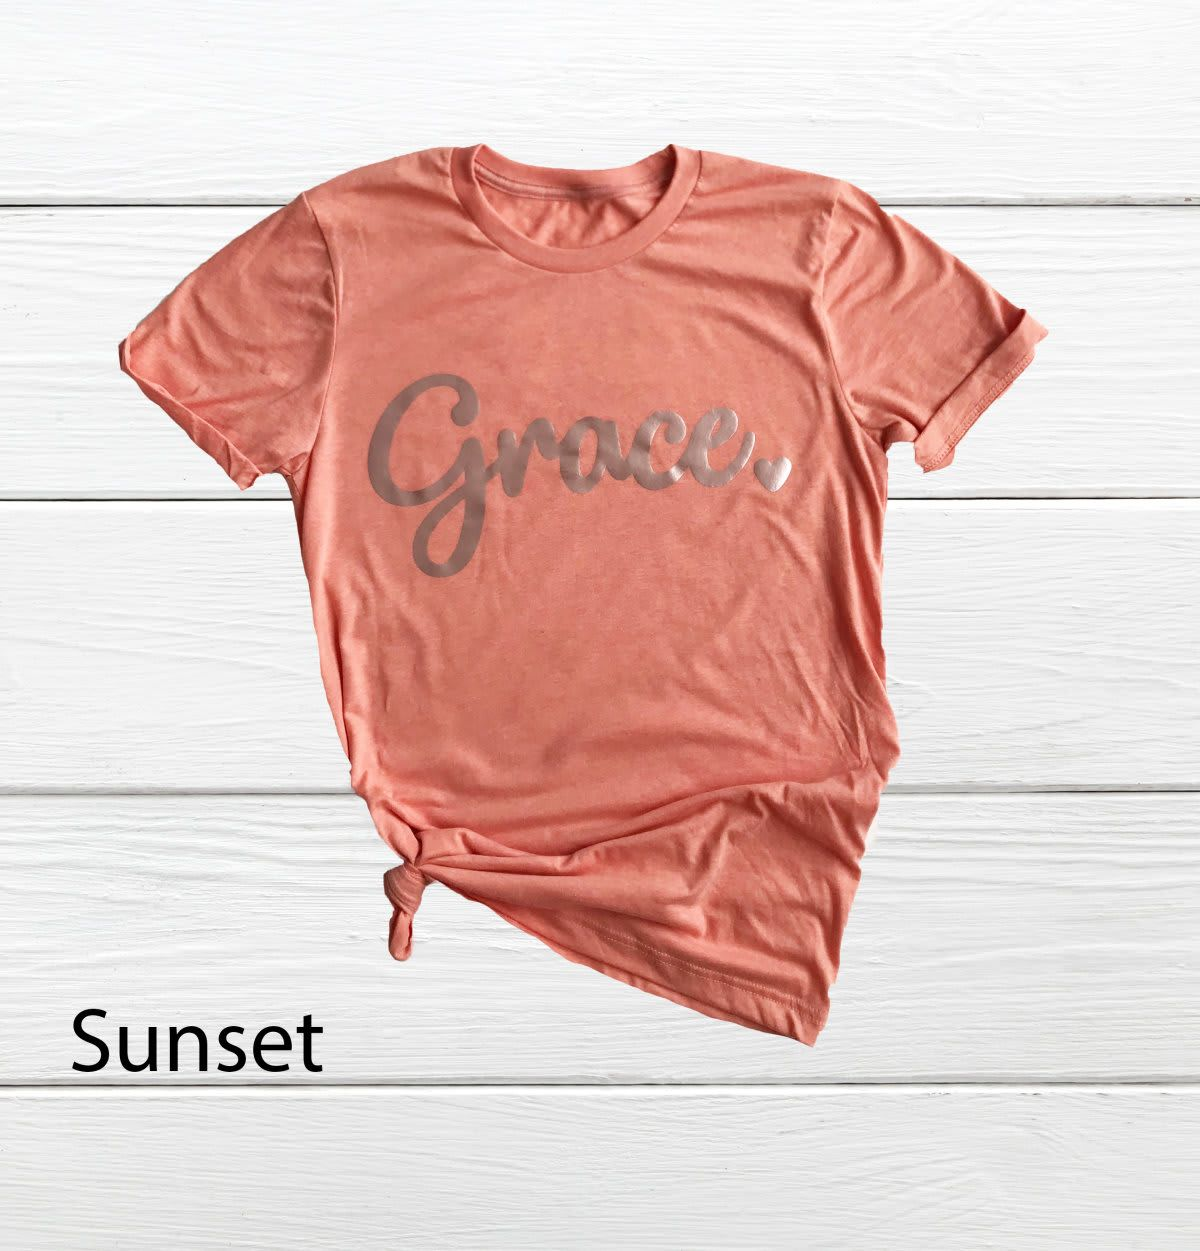 646782cab Rose Gold Tees | Cricut Explore Projects: T-shirts | Gold tees, Rose ...